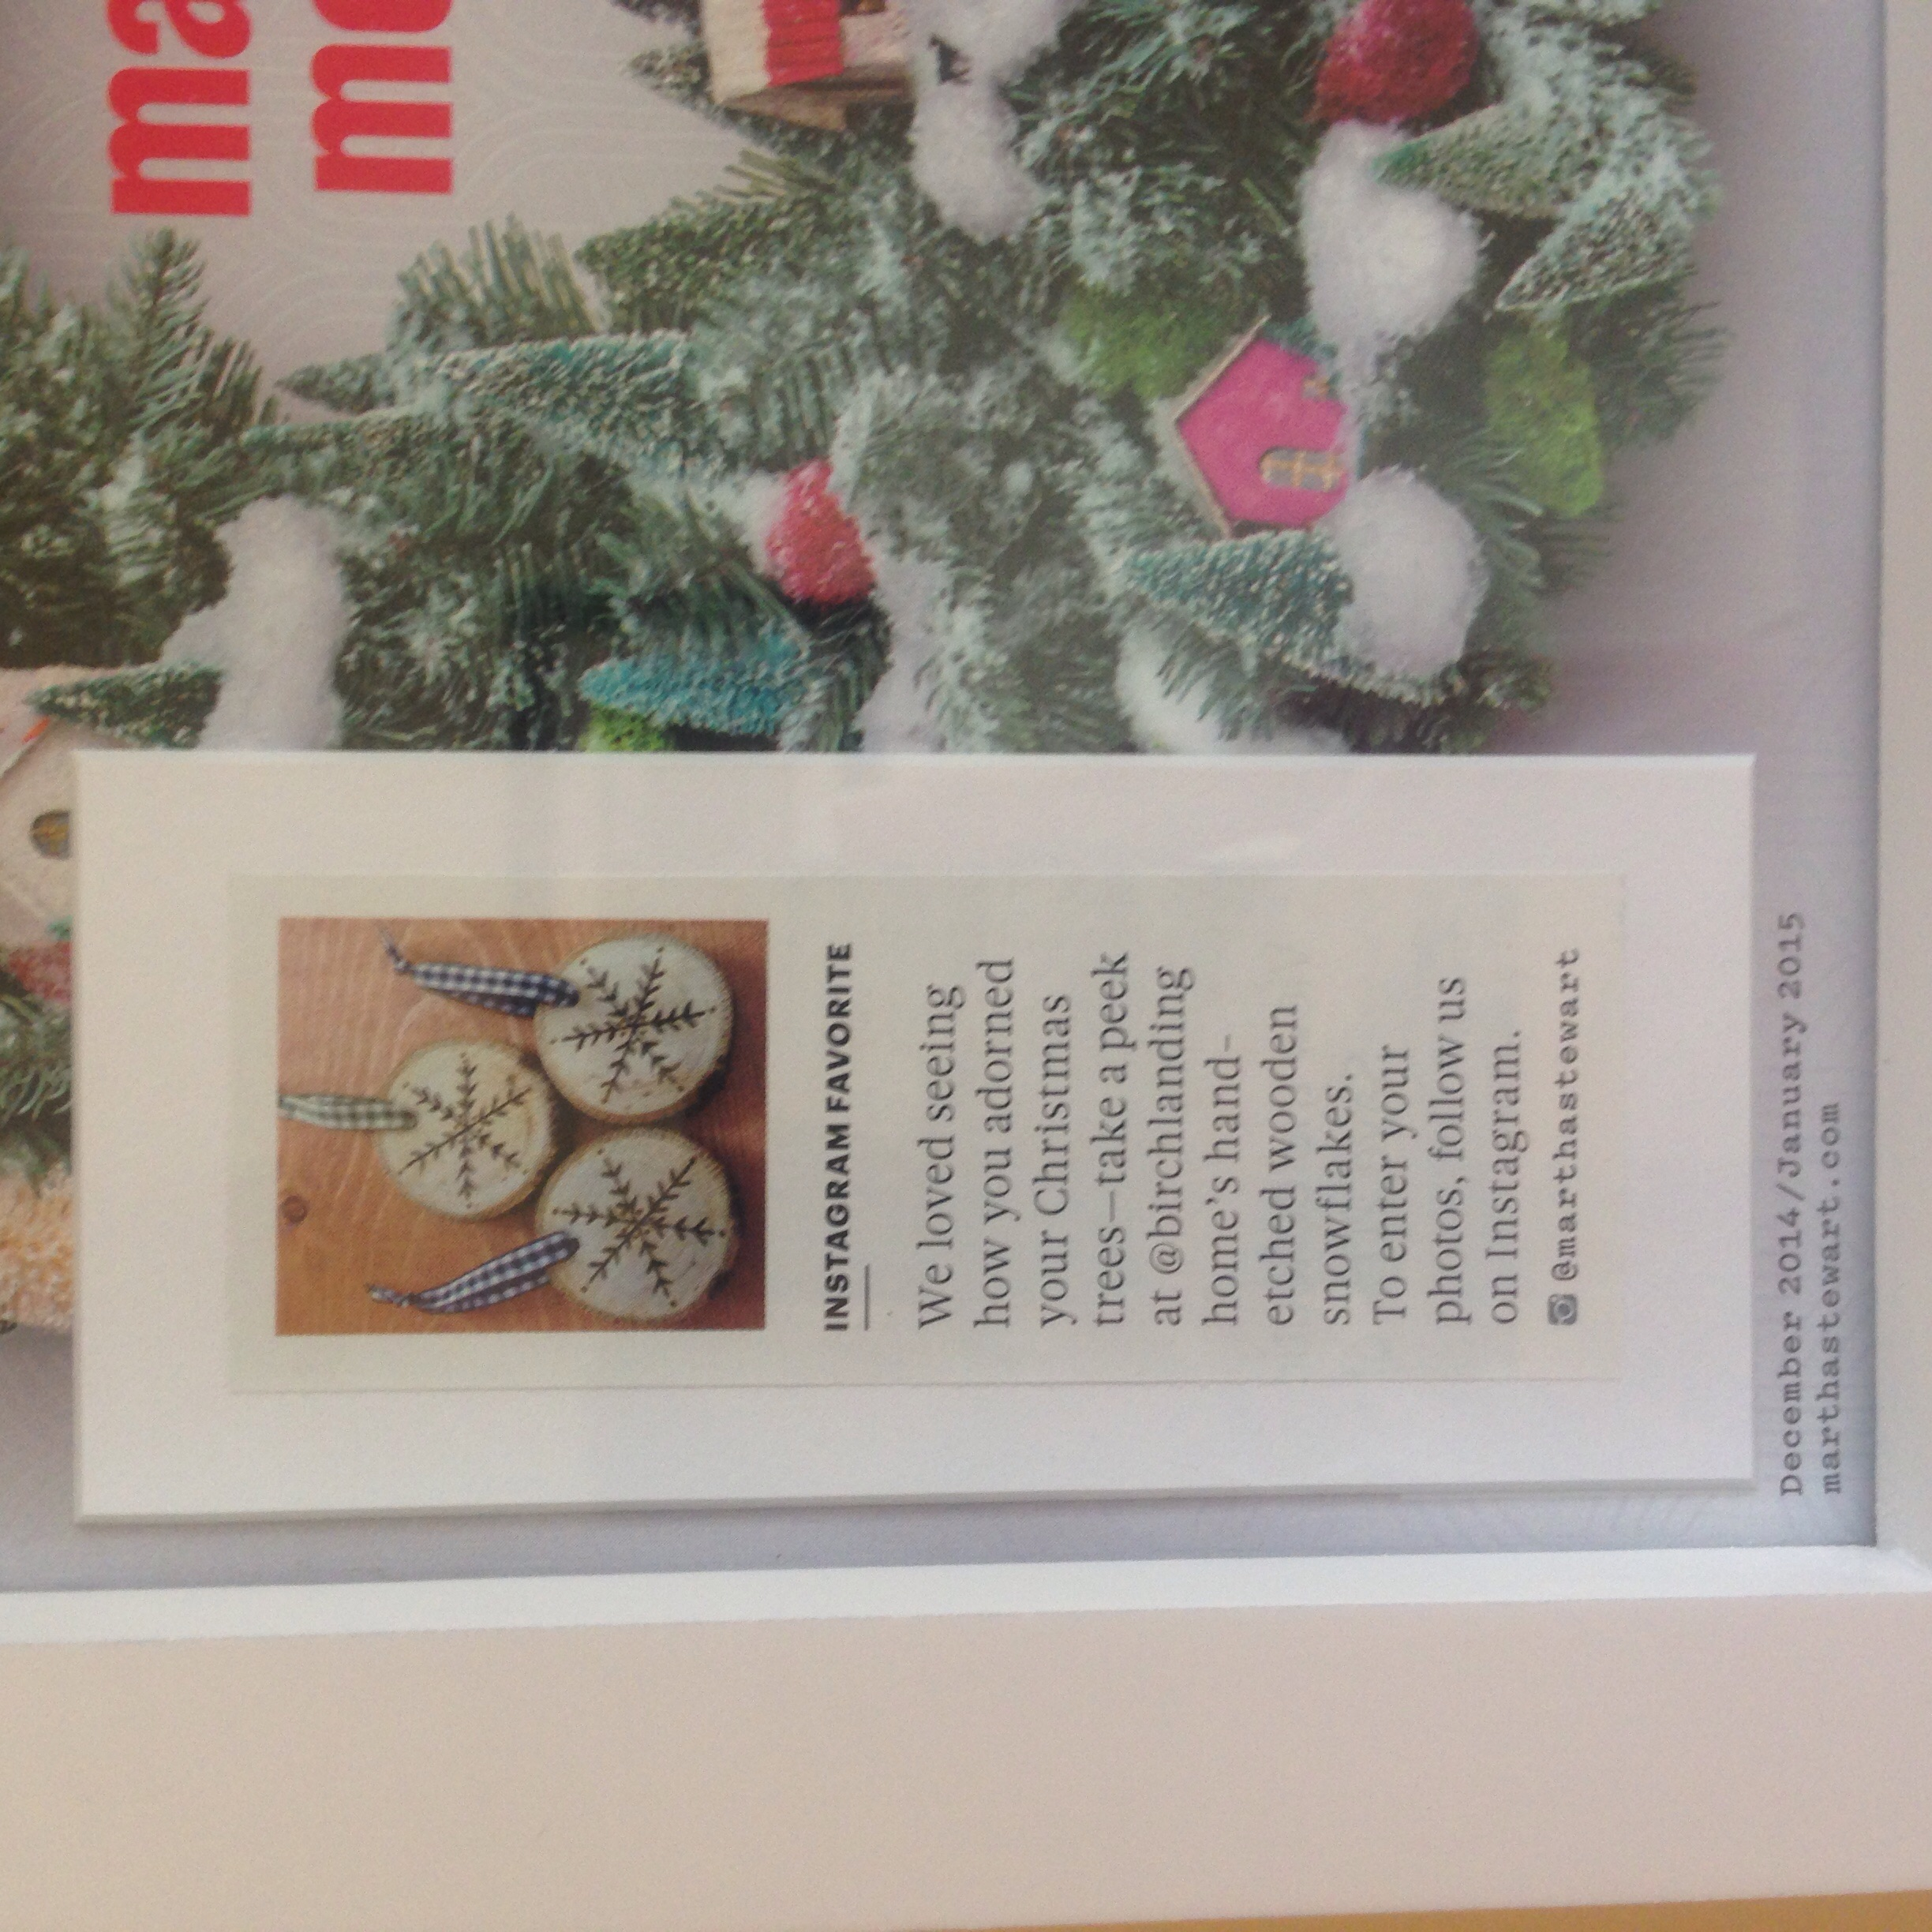 I framed the issue of Martha Stewart Living Magazine my hand-etched ornaments were featured in.